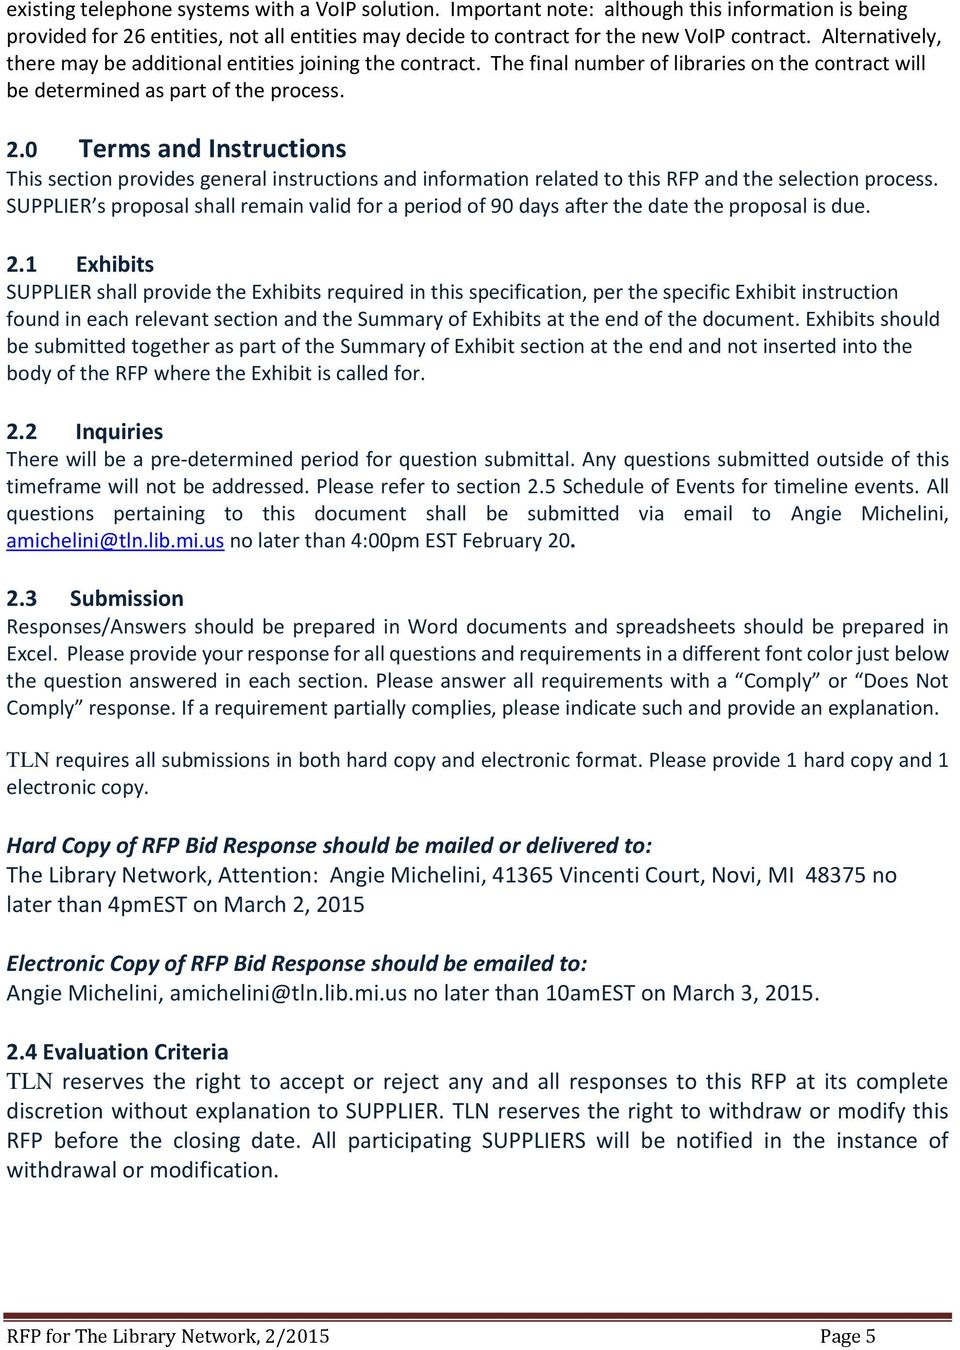 0 Terms and Instructions This section provides general instructions and information related to this RFP and the selection process.